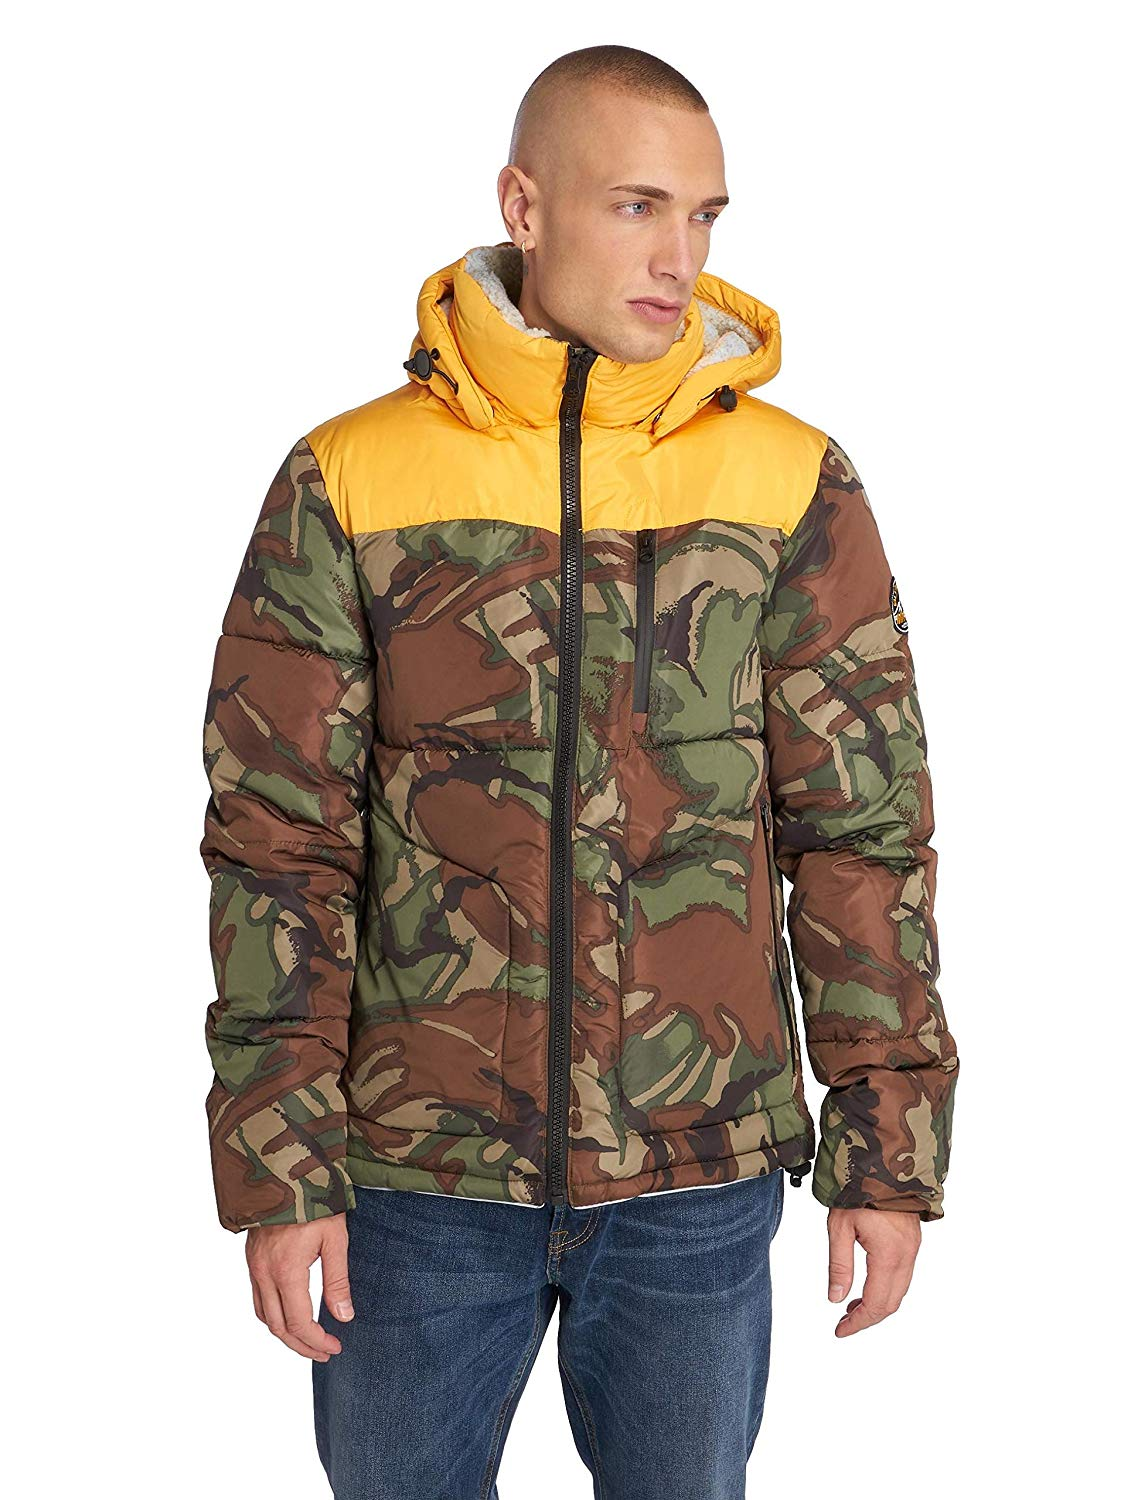 1d0907dcc17d Variation-B07GCNHYCV-of-Superdry-Uomo-GiaccheGiacca-Invernale-Expedition-Coat-B07HF5VZGJ-20029.jpg